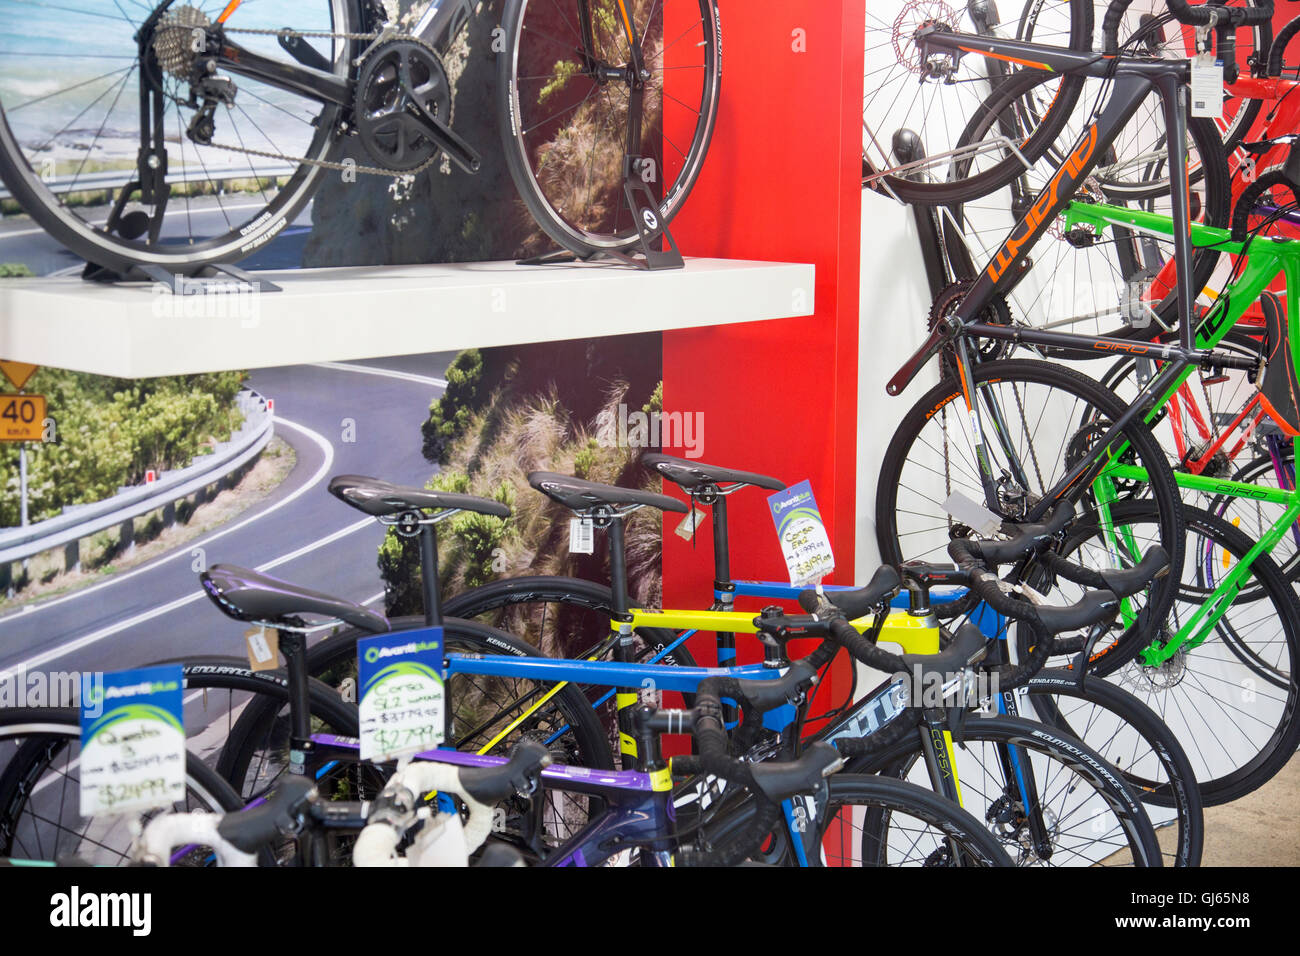 Bike Shop Sale Bicycles Cycles For Sale At Avanti Bike Shop In Narrabeen On